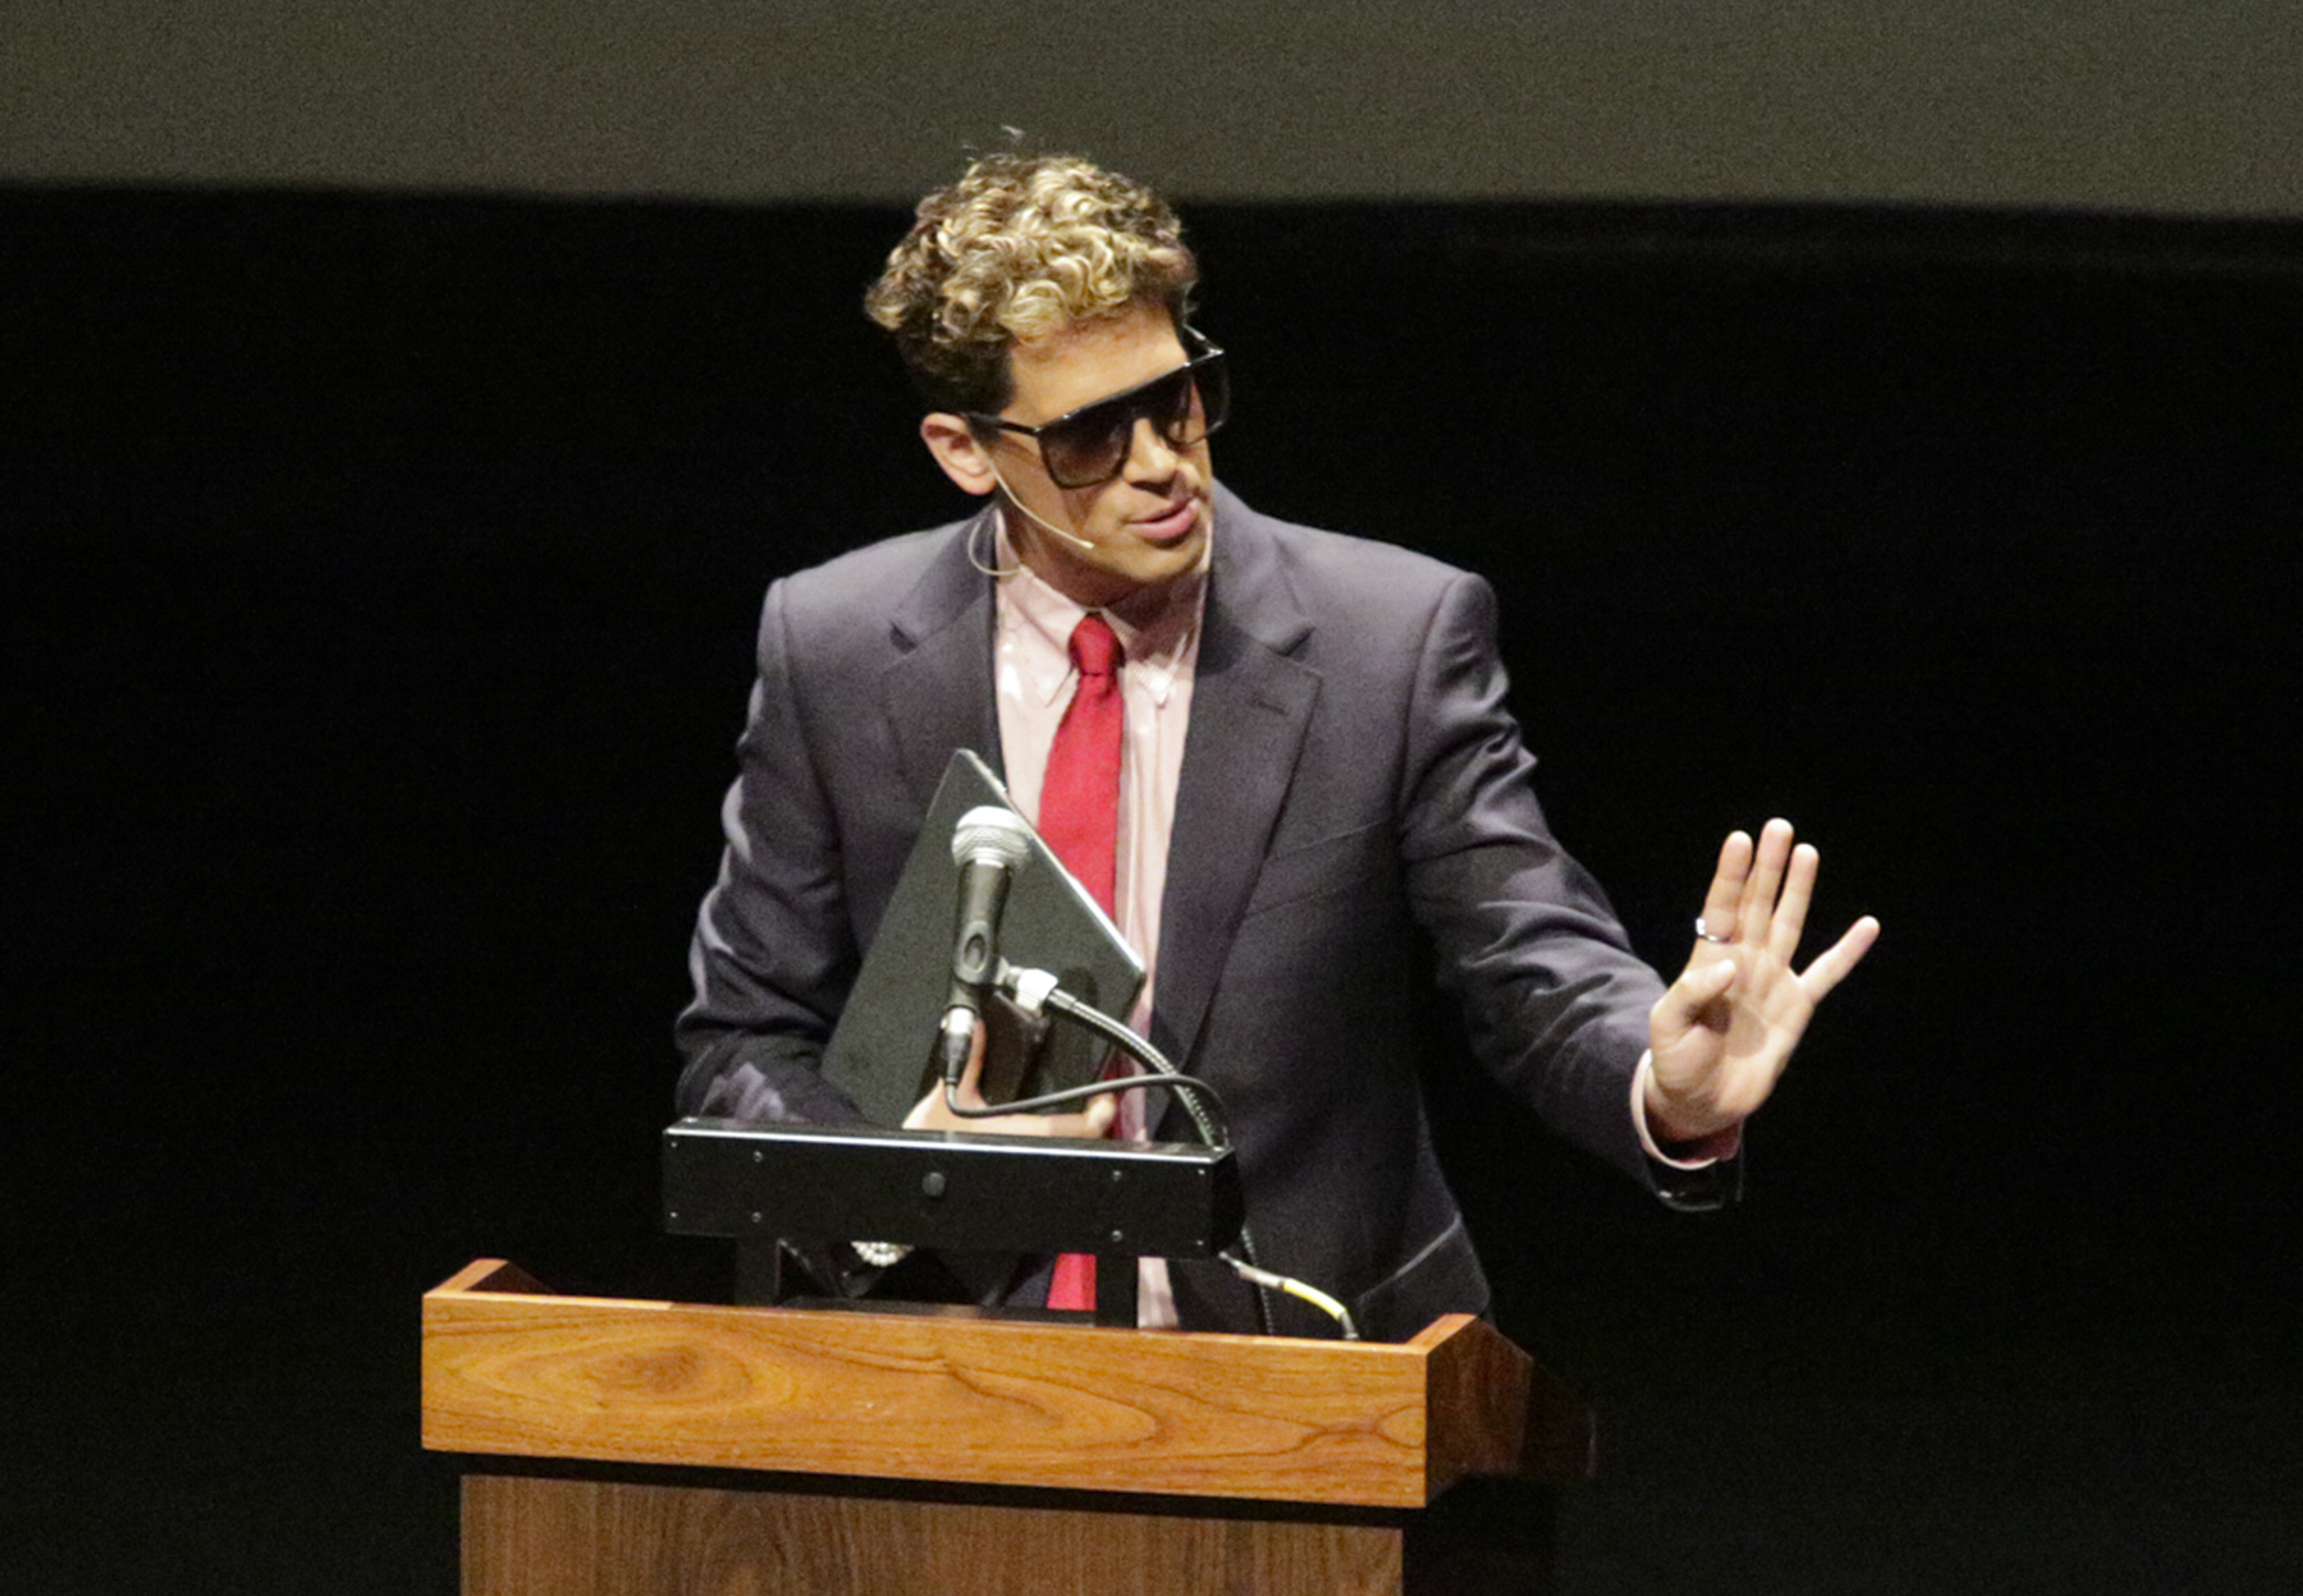 Breitbart Editor Milo Yiannopoulos Dropped From CPAC, Loses Book Deal